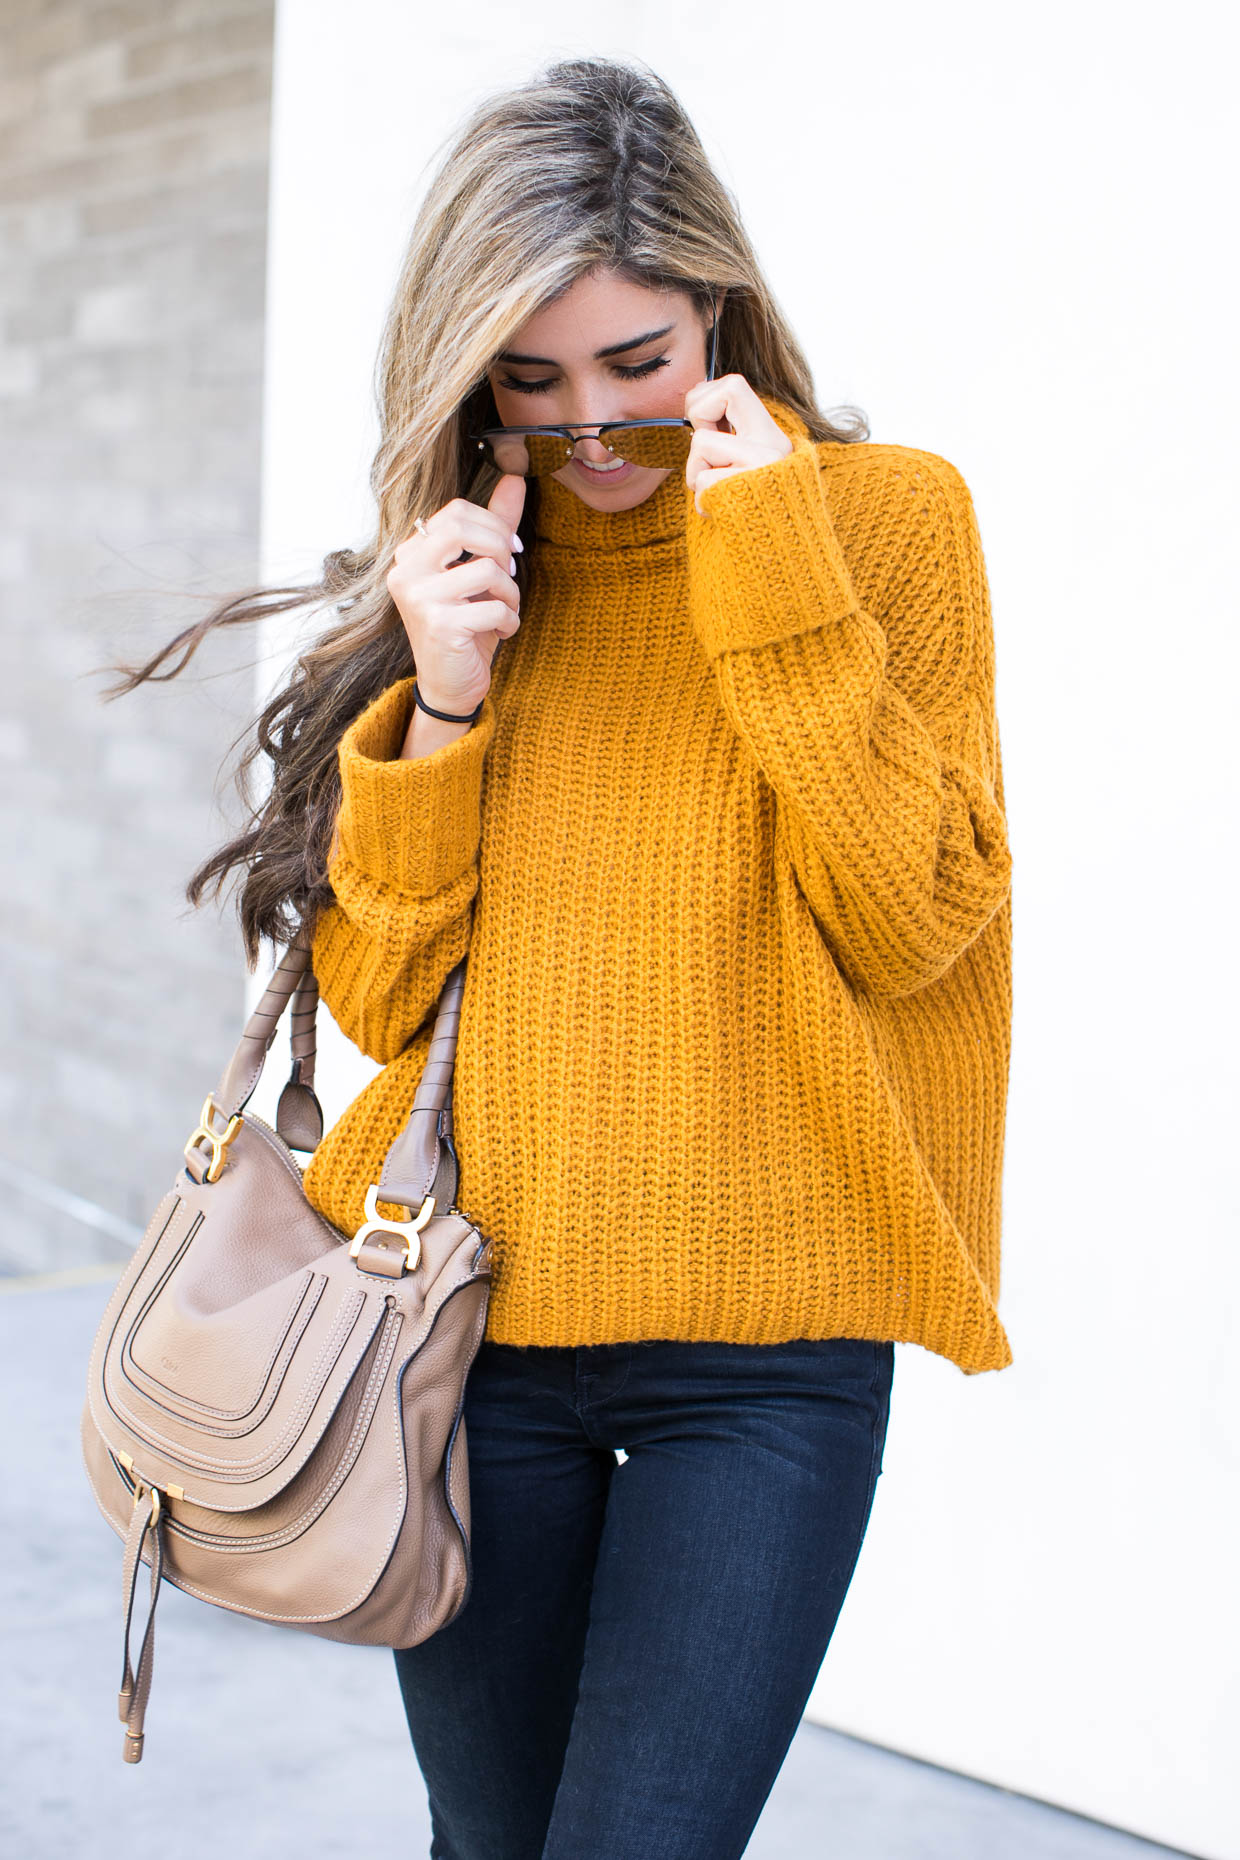 The Oversized Sweater - The Darling Detail